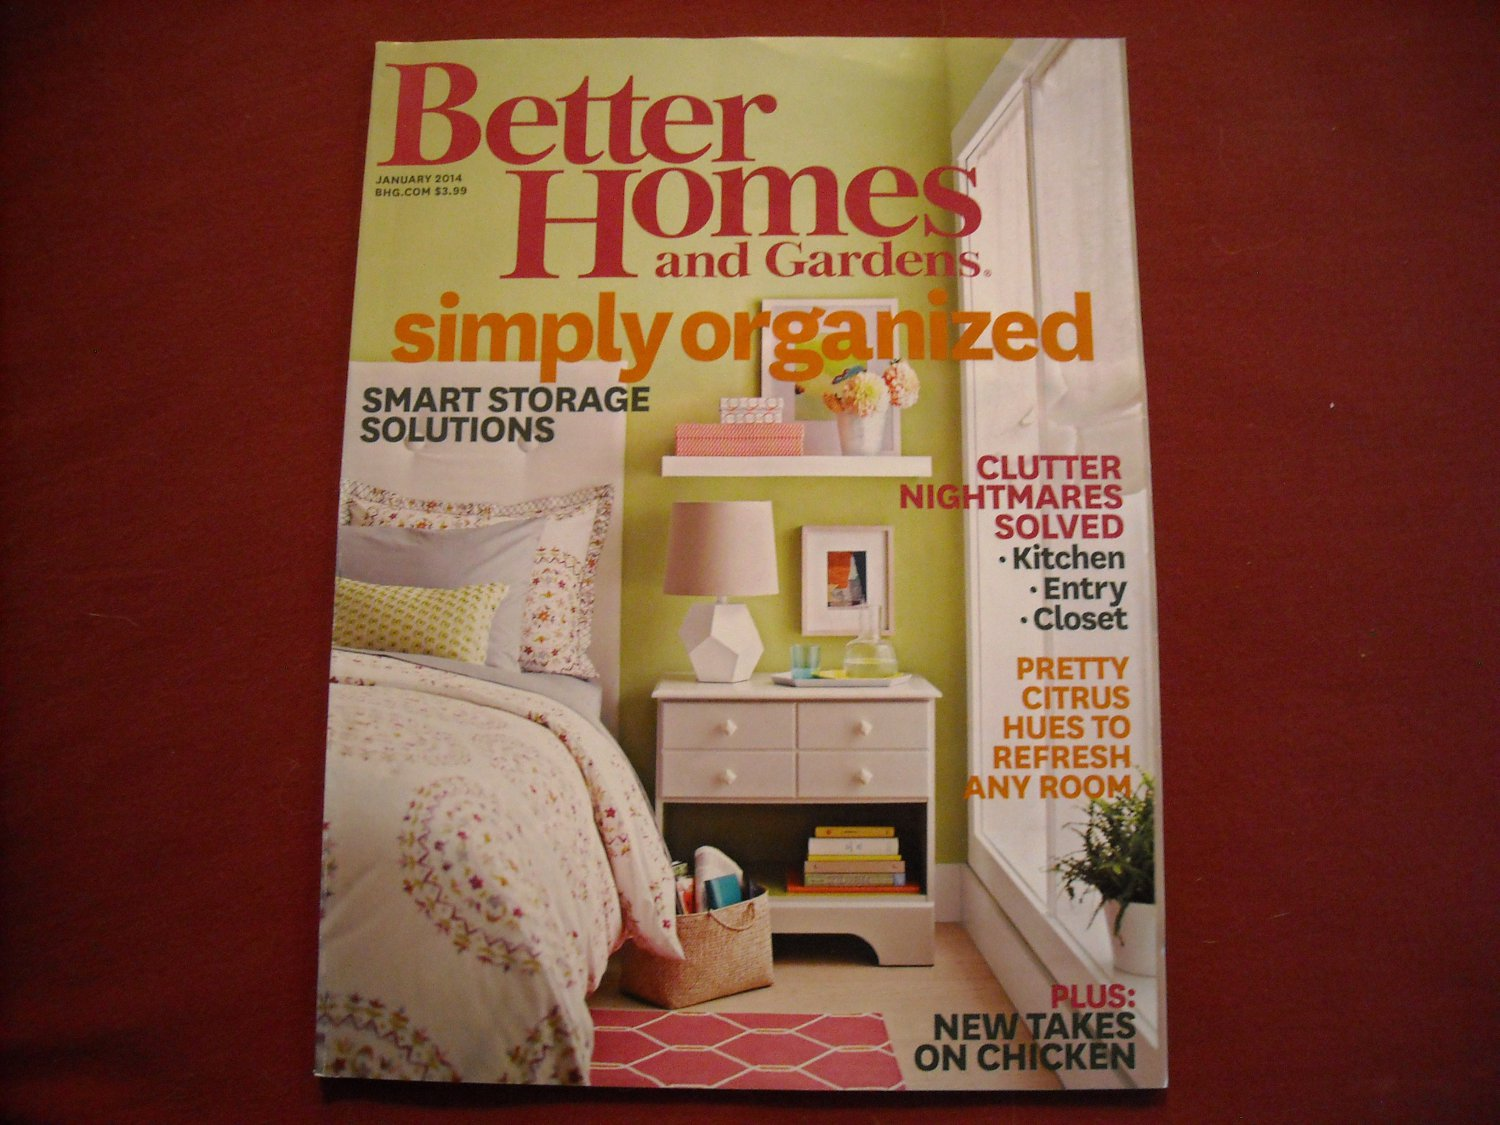 Better Homes and Gardens January 2014 Volume 92 Number 1 Simply Organized